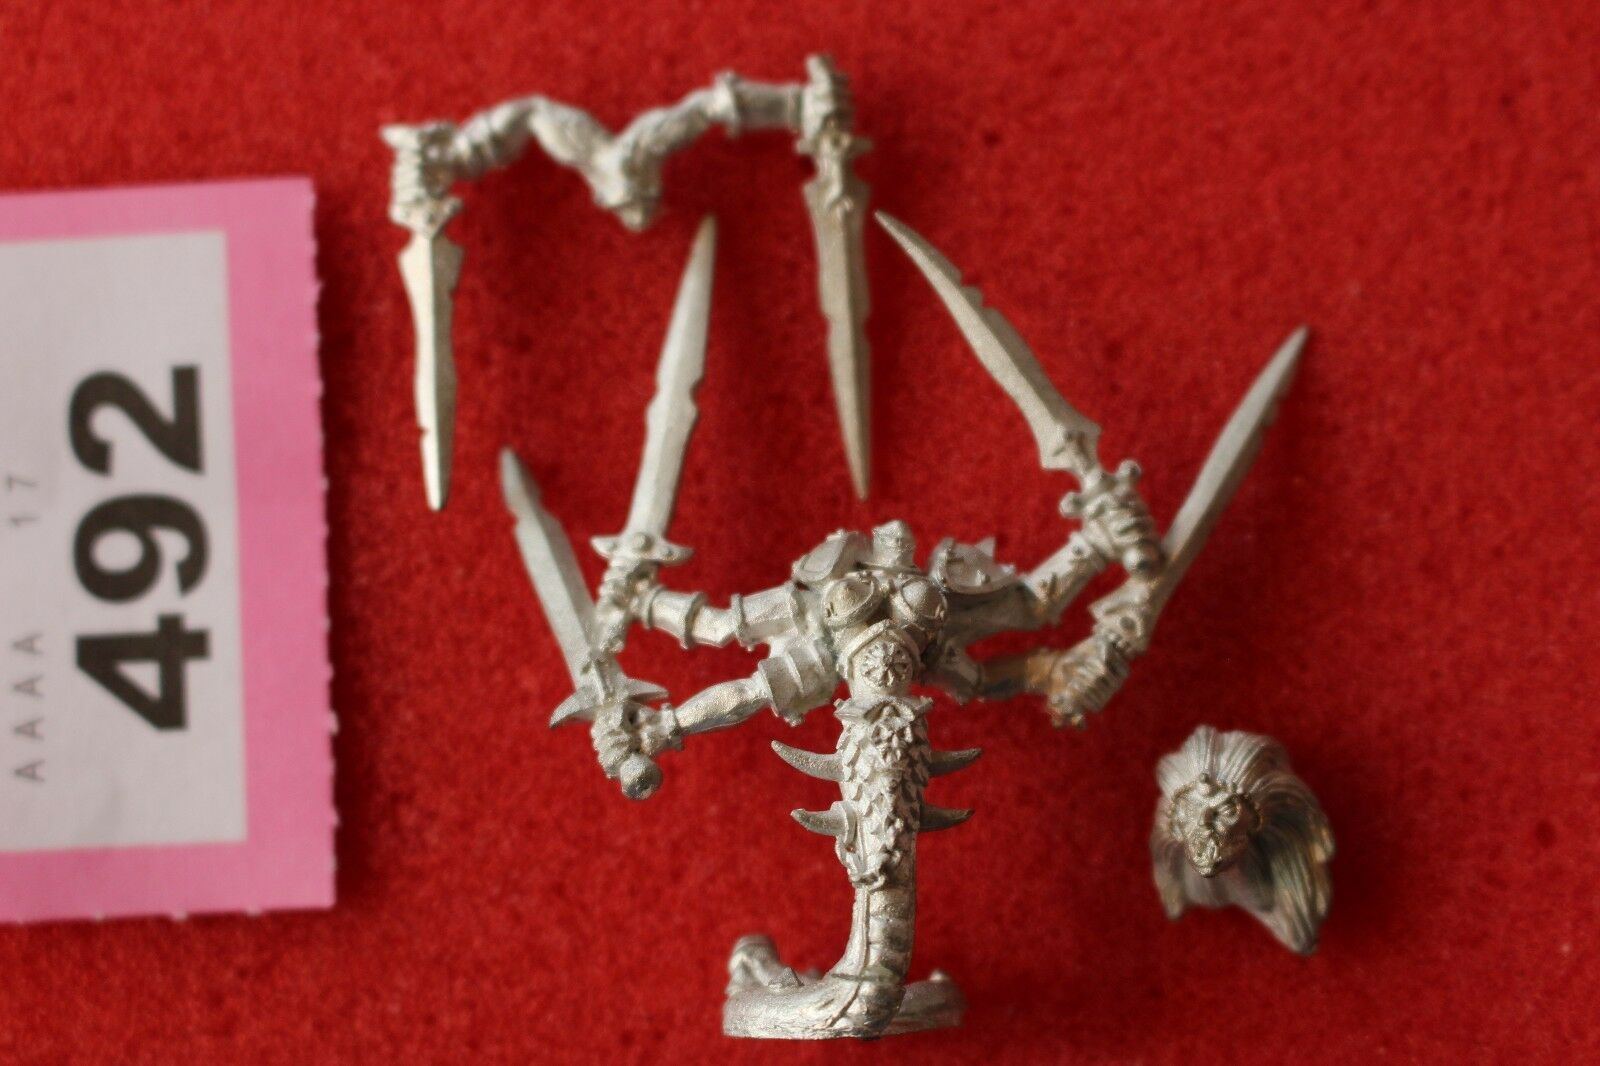 Games Workshop Warhammer Dechala the Denied One Chaos Champion Slaanesh Metal